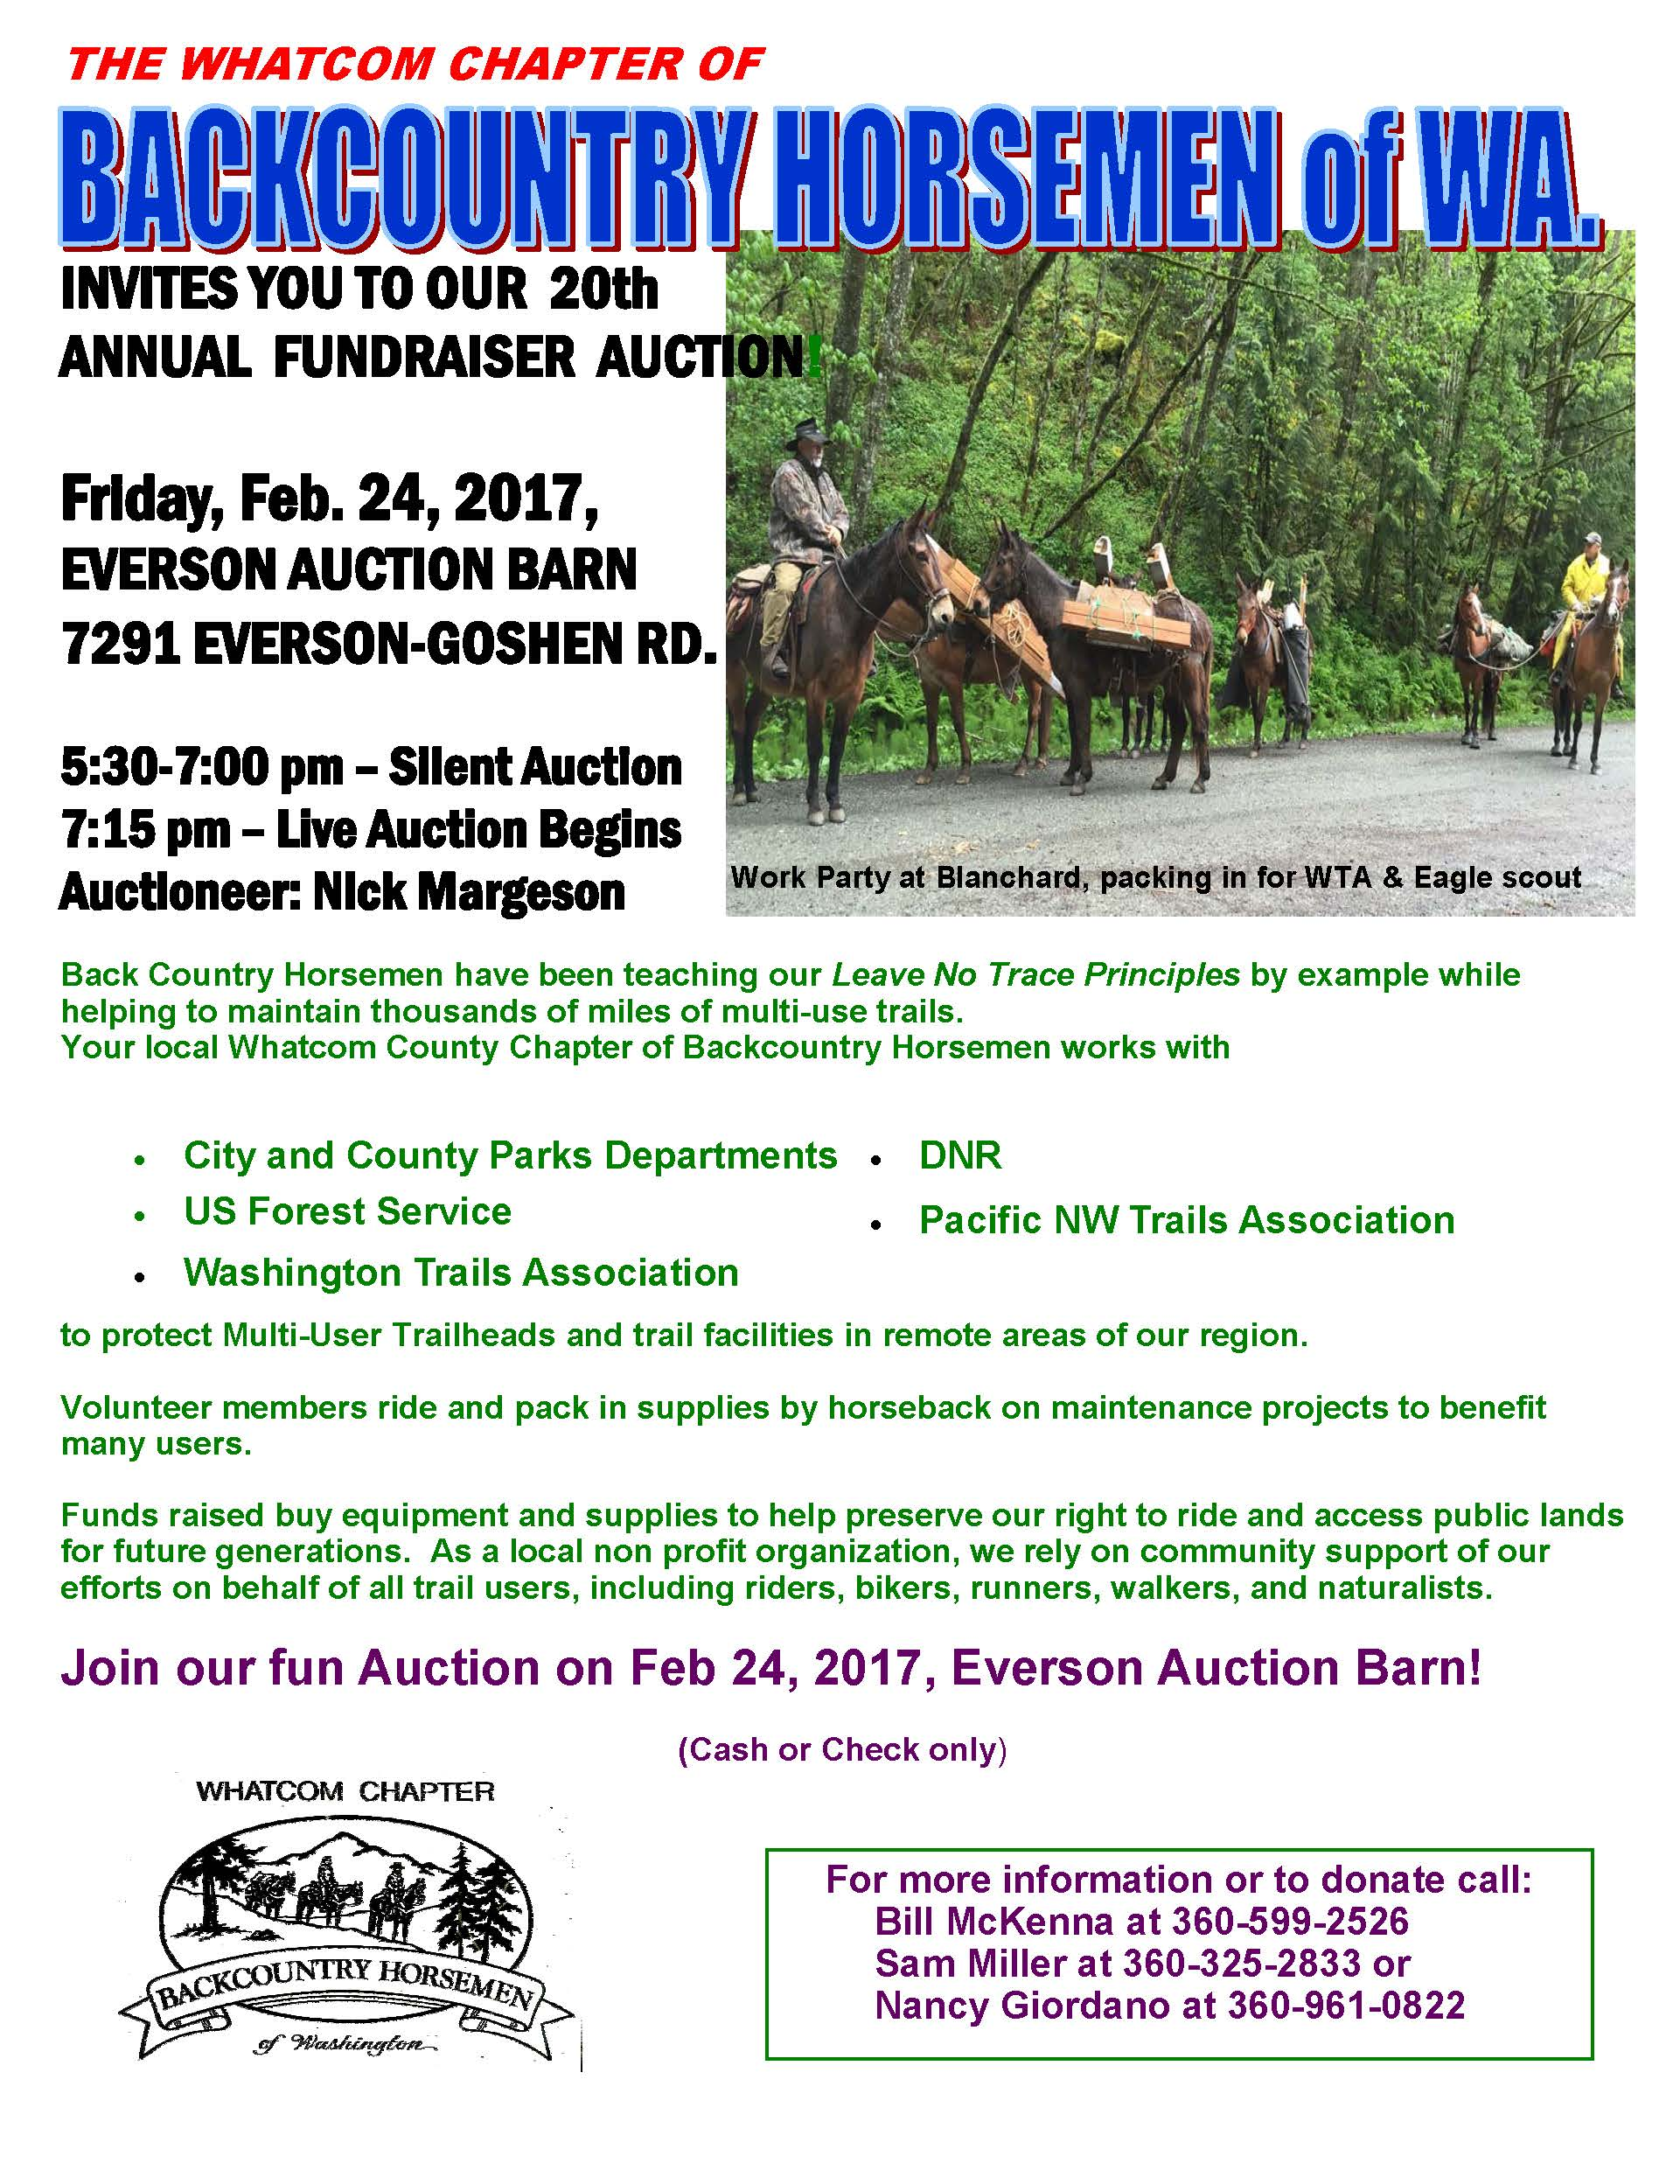 Annual BCHW Auction!!! – Whatcom Chapter Backcountry